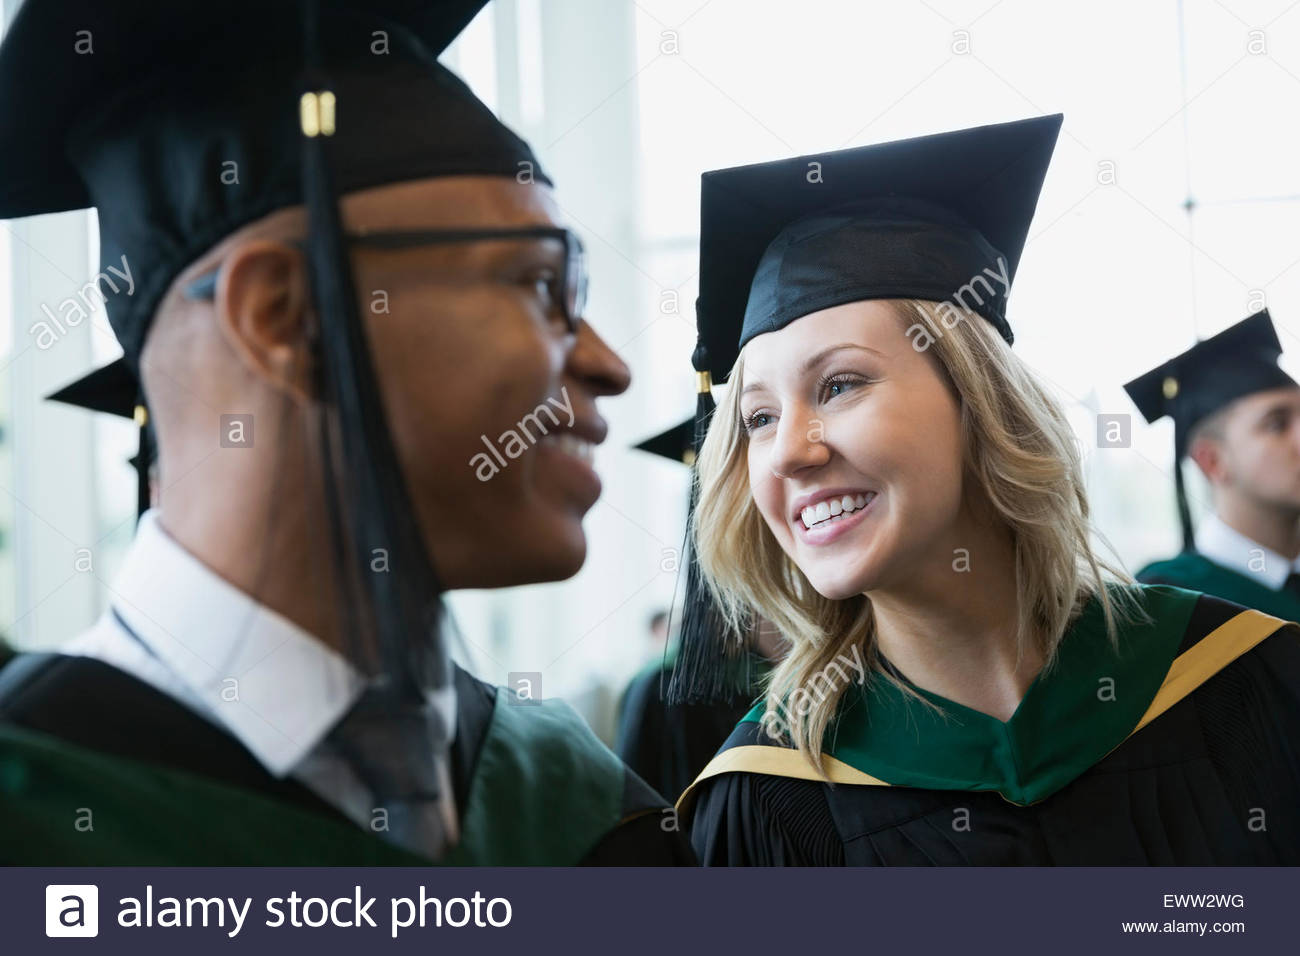 Smiling college graduates in cap and gown Photo Stock